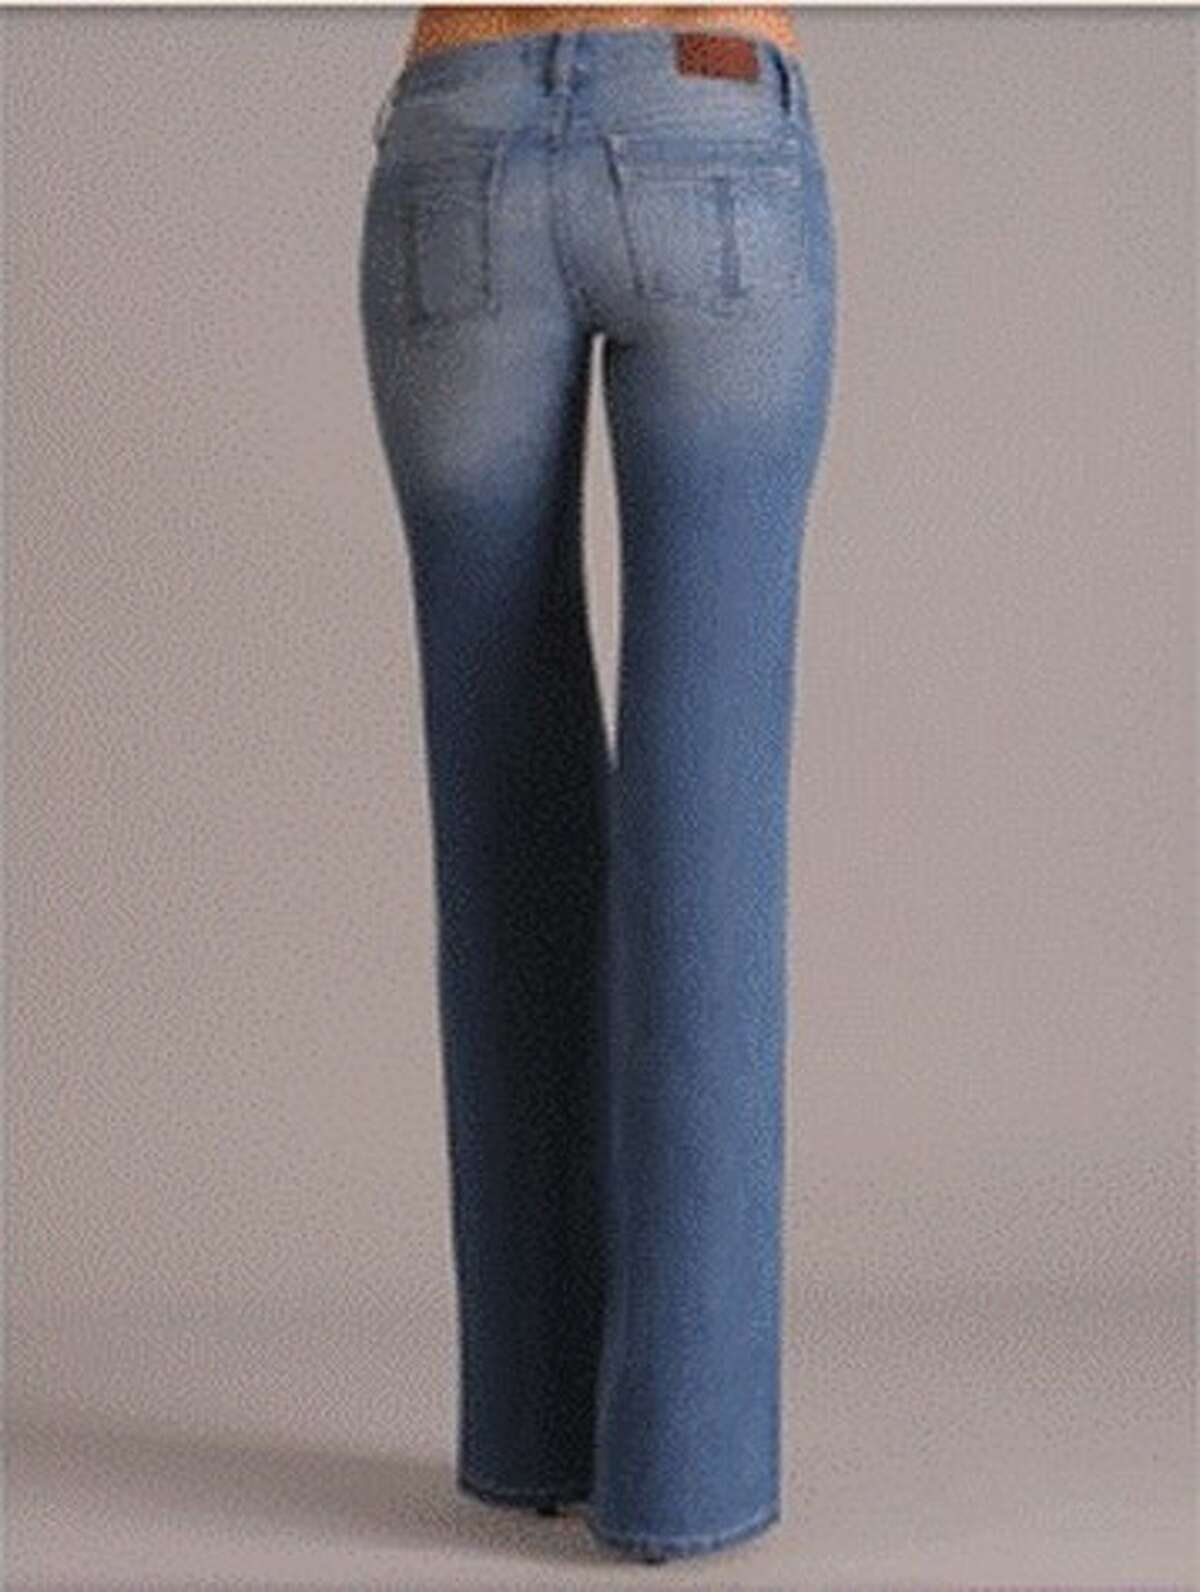 Boot Cut Jeans by Henry & Belle. Straight leg or boot cut jeans should hit at the bottom of your heel or longer depending on the shoes.